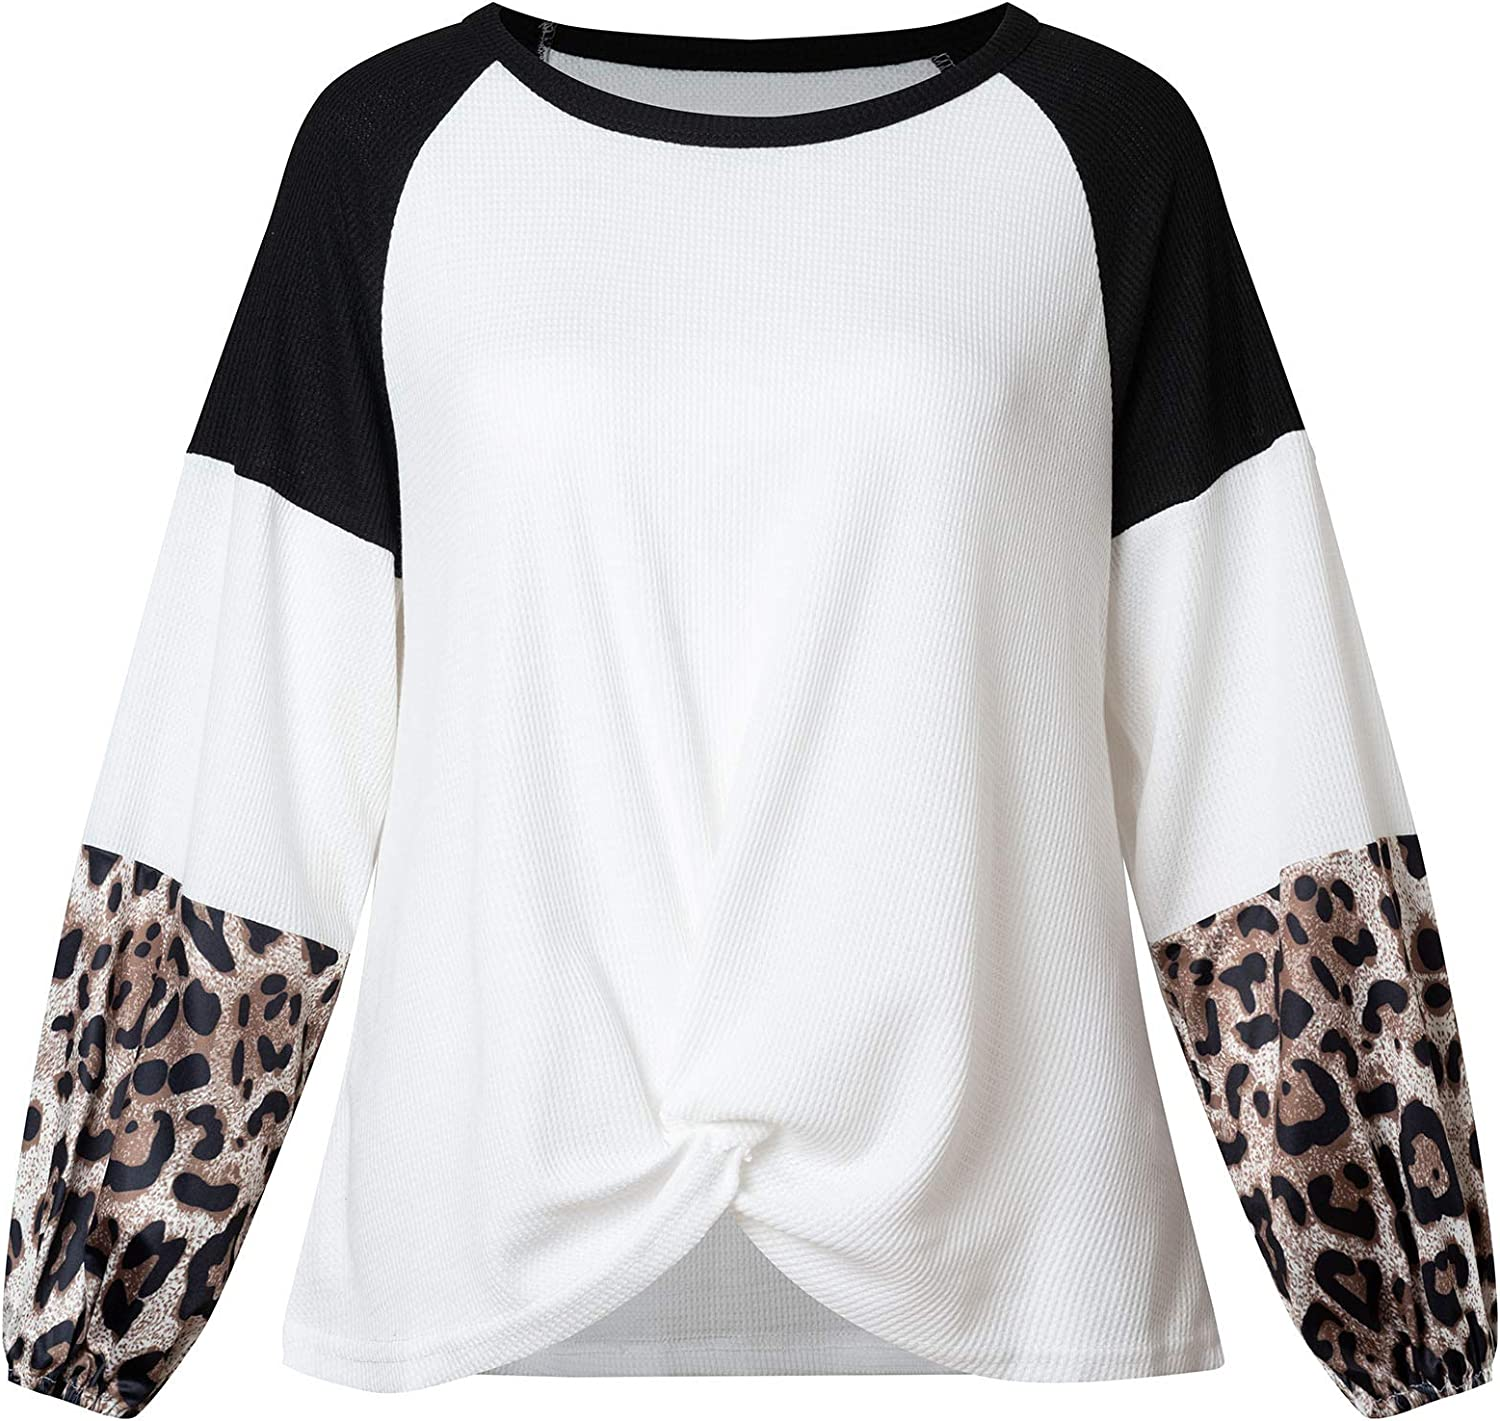 DUYOHC Womens Color Block Casual Tunic Tops Leopard Long Sleeve Waffle Knit Blouse with Twist Knot Loose Shirts L Large Black